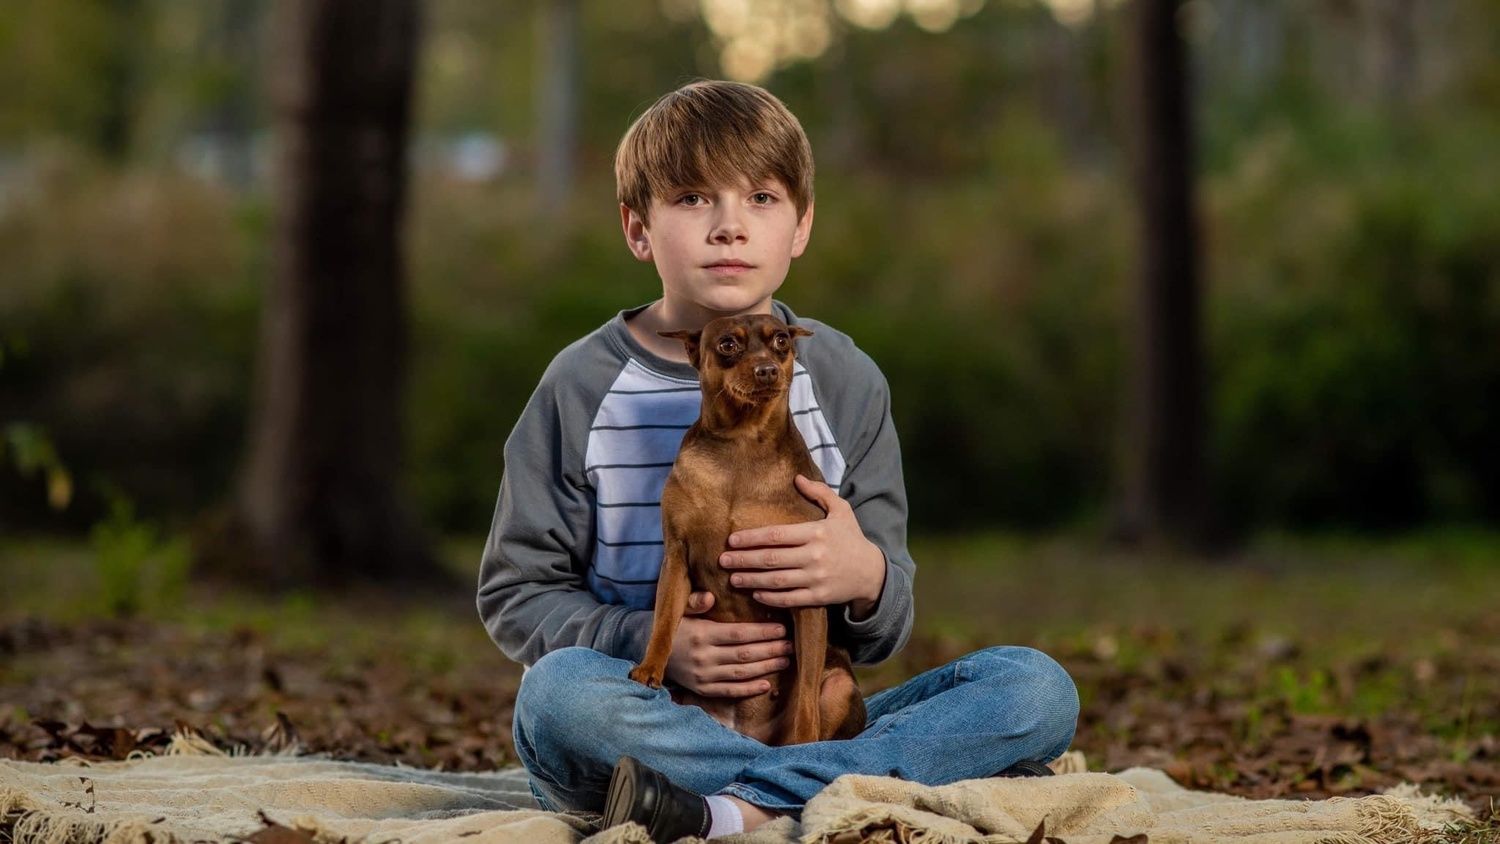 Noah and his dog by Steve Ross